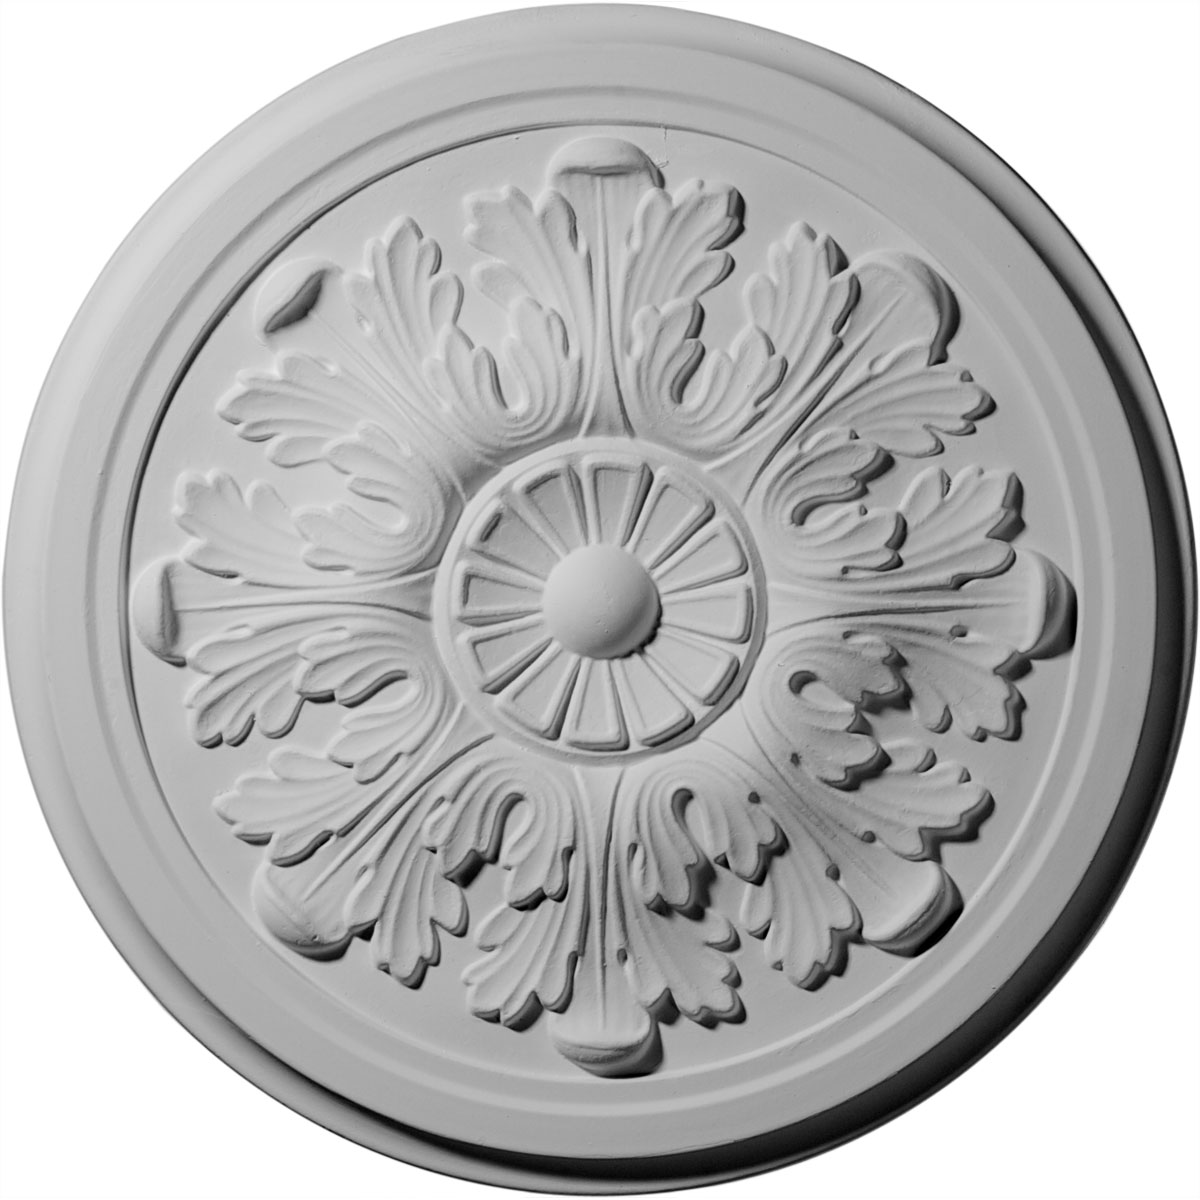 A Creative Ceiling Medallion And Rosette Project